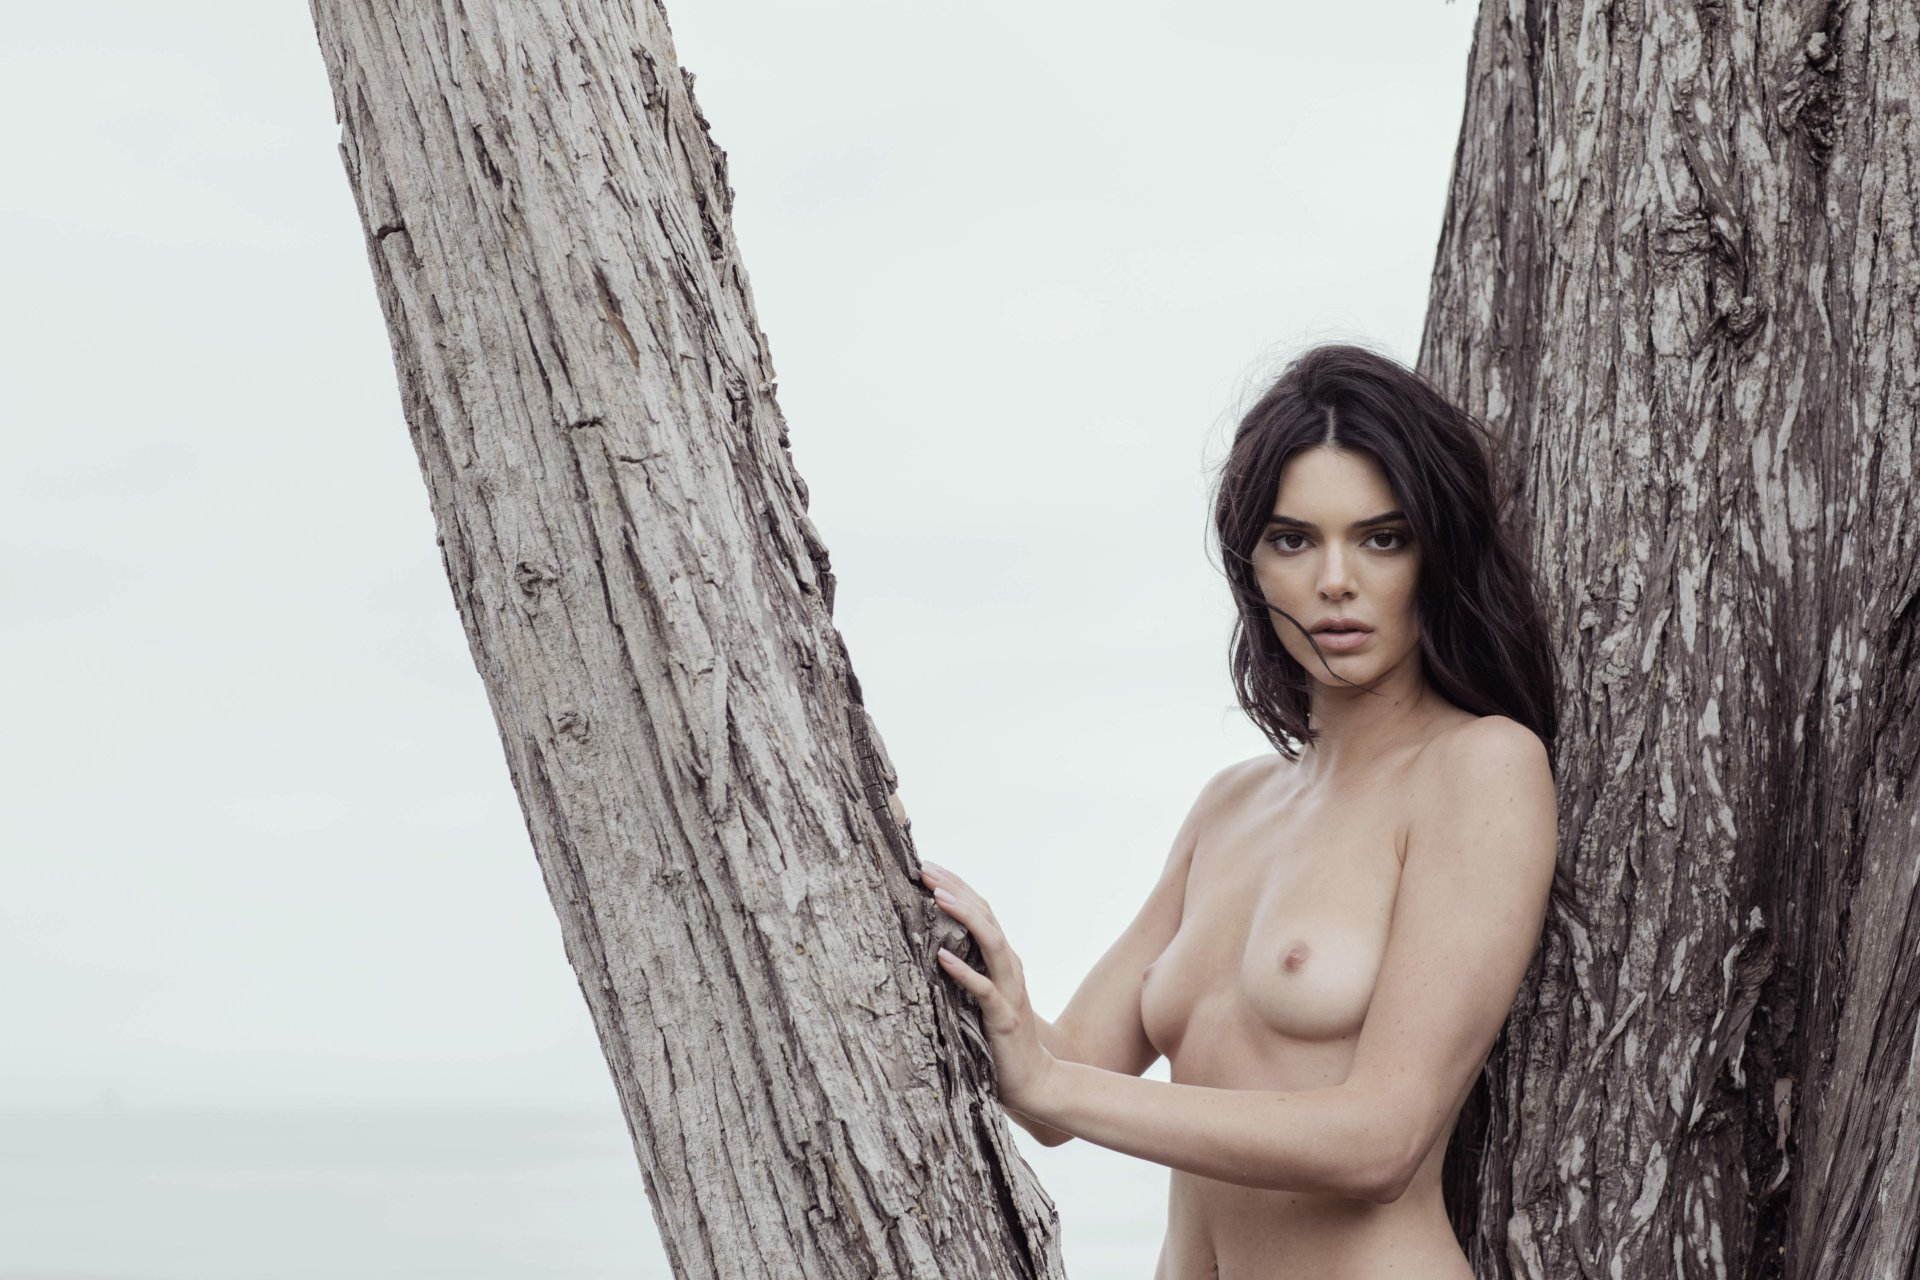 Kendall-Jenner-Nude-TheFappeningBlog.com-14.jpg